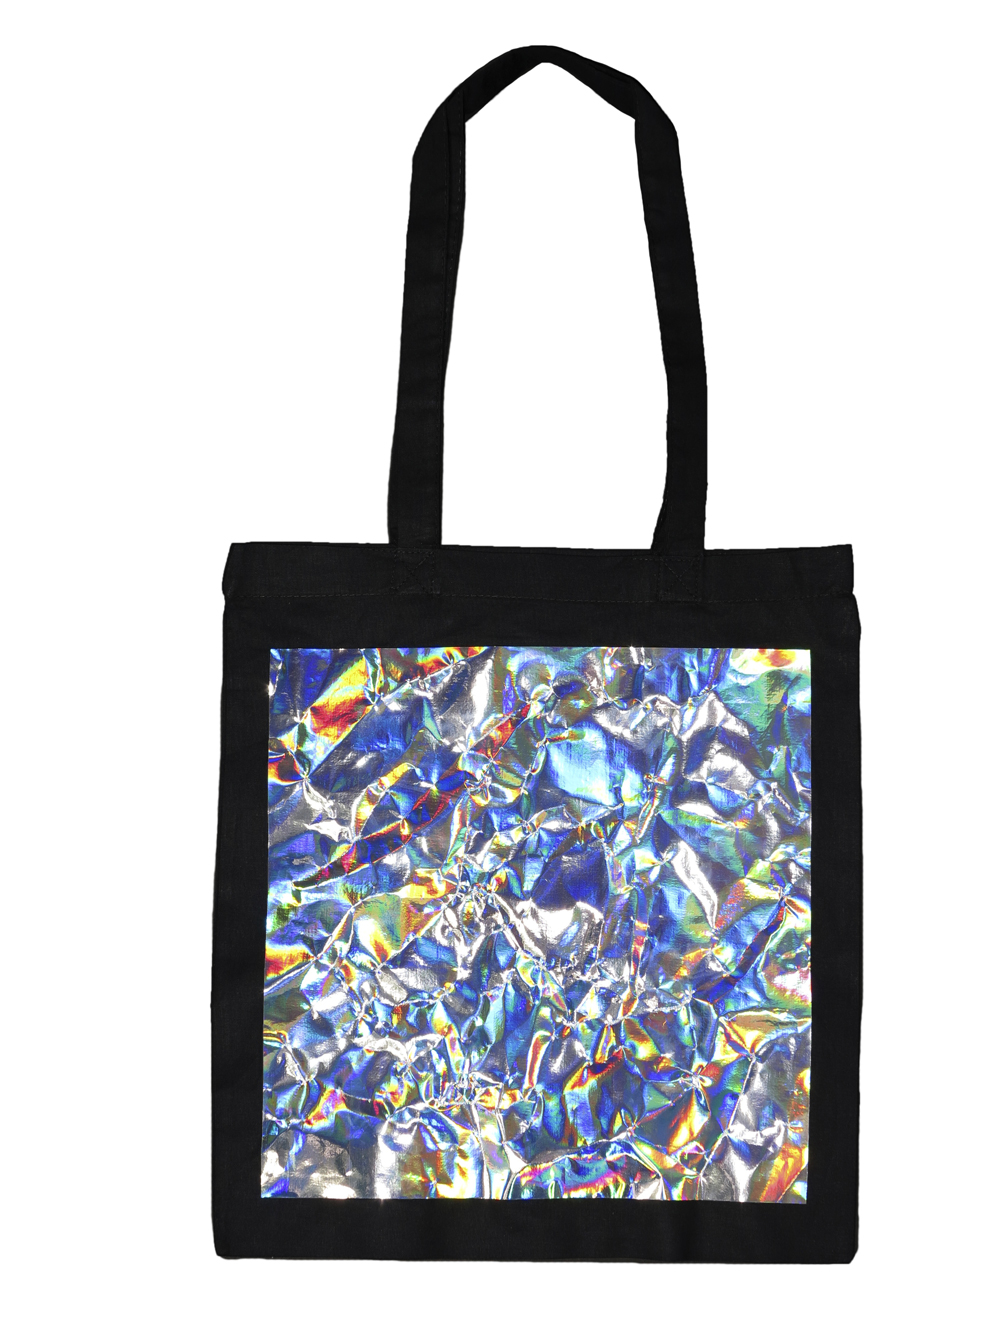 BIG SQUARE TOTE - 14